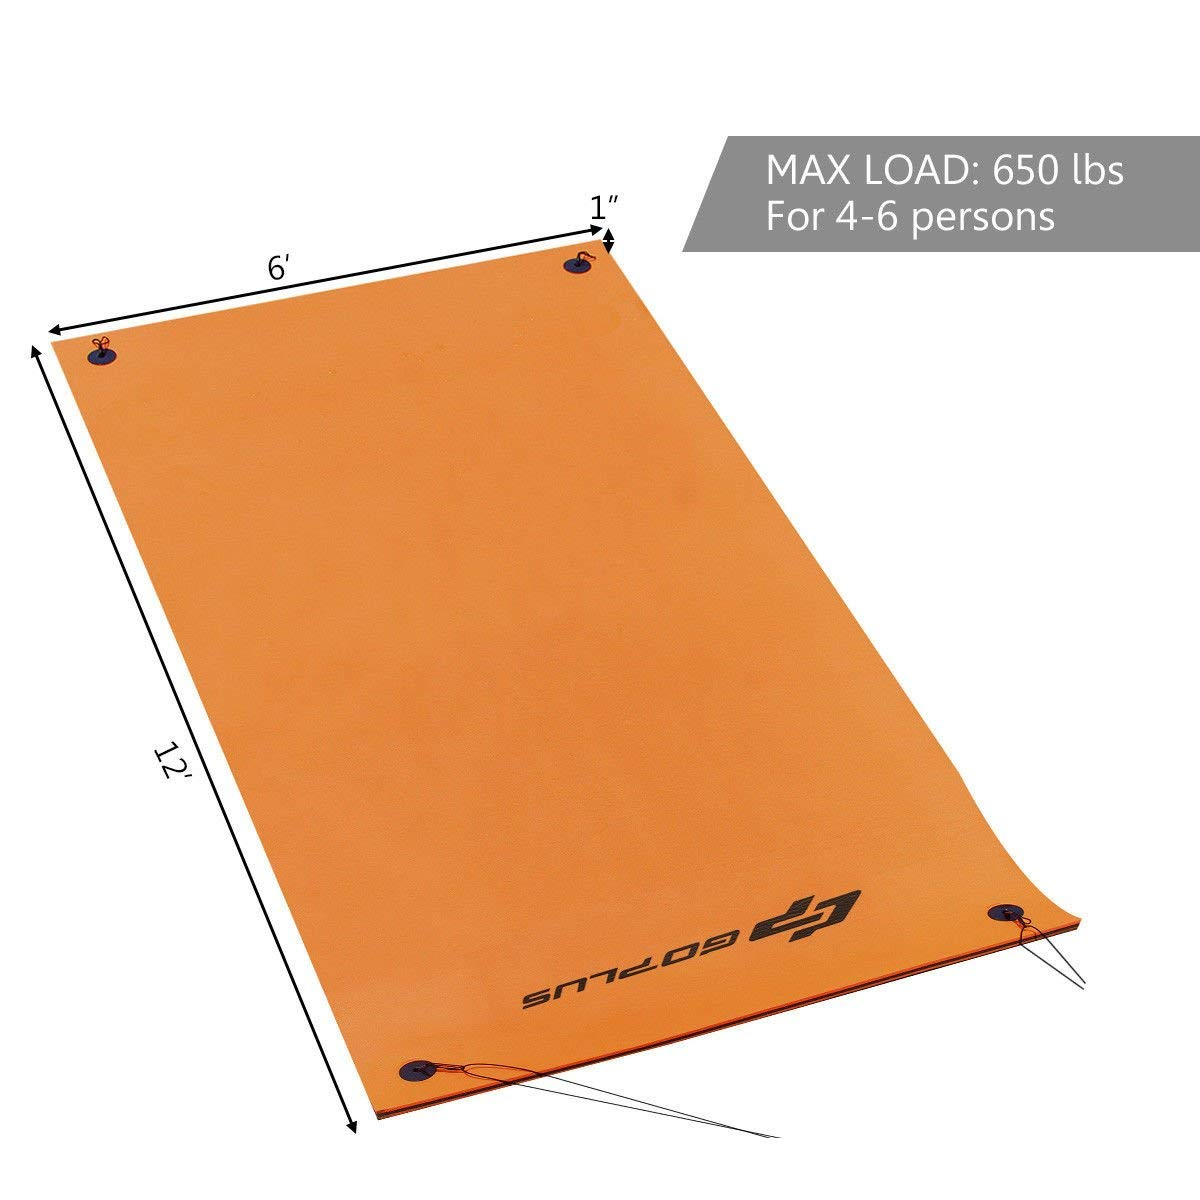 Goplus 12' x 6' Floating Water Pad for Lakes 3 Layer Floating Foam Mat Aqua Buoyancy Pad Designed for Water Recreation and Relaxing (Orange + Black) by Goplus (Image #9)